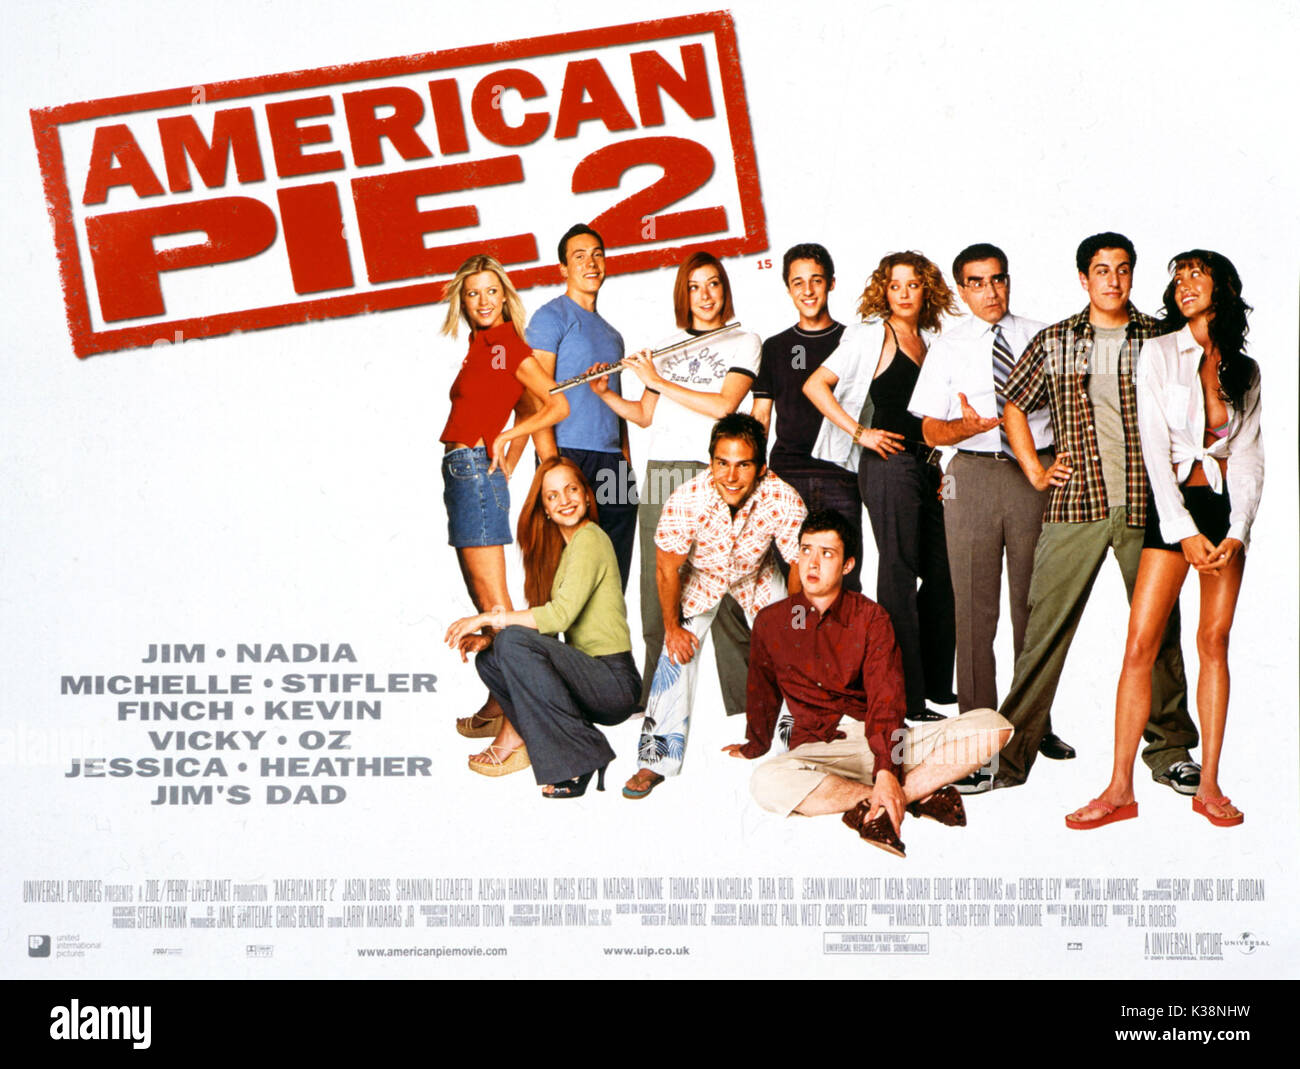 American Pie Nadia Scene Unrated american pie 2 stock photos & american pie 2 stock images